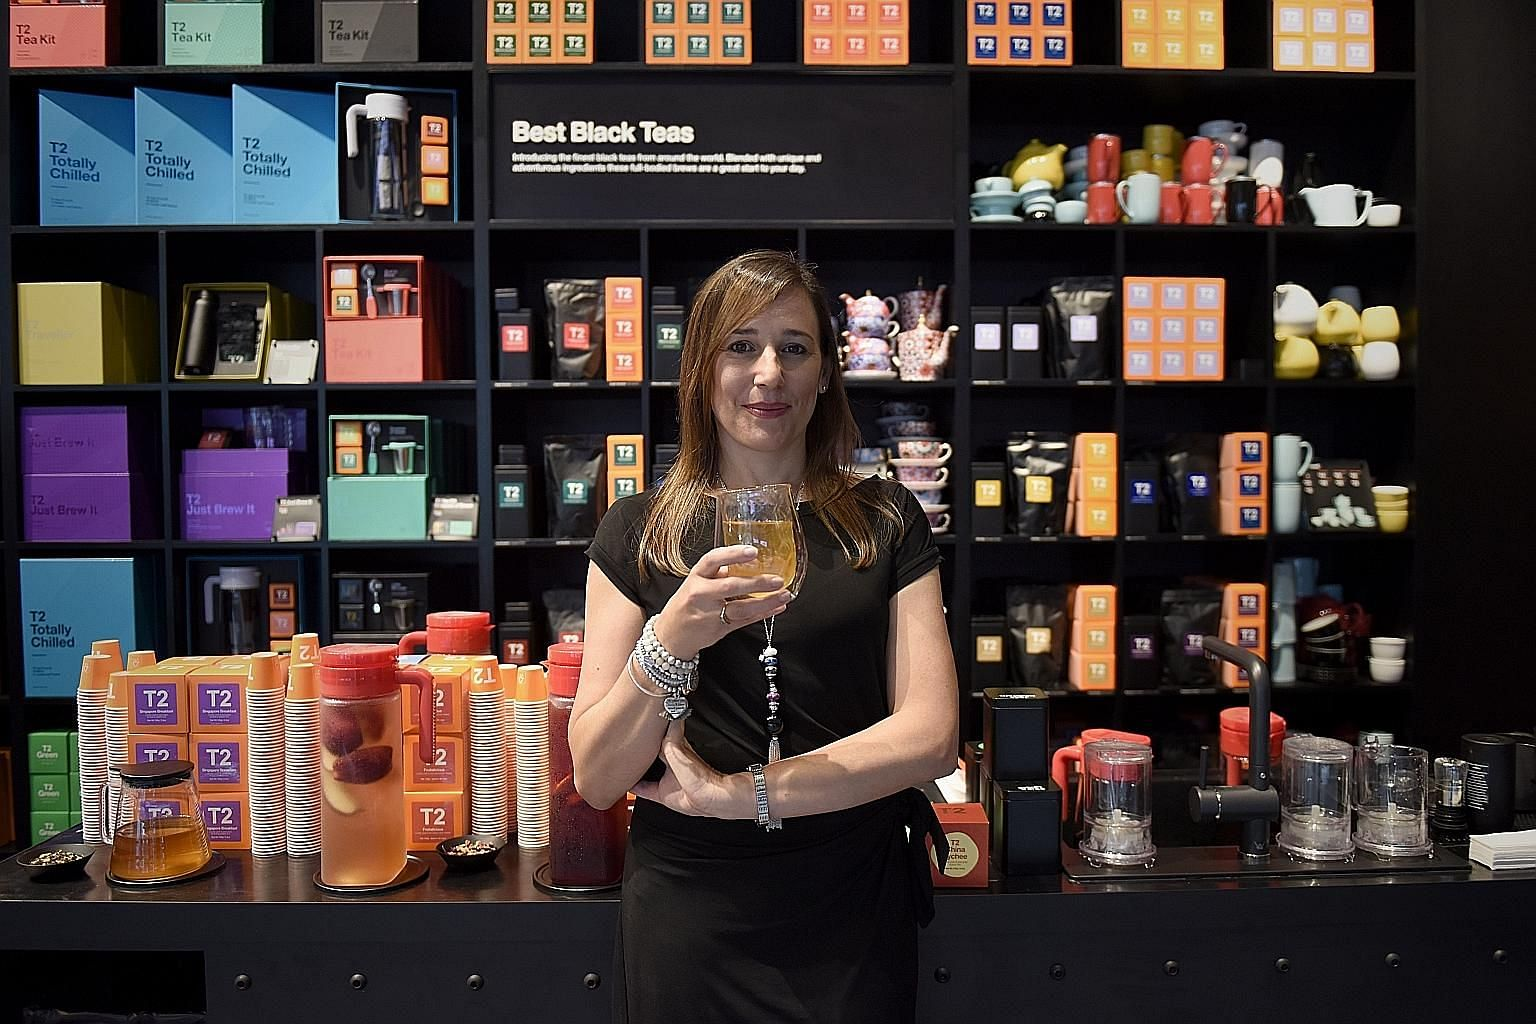 T2 chief executive officer Nicky Sparshott with the Singapore Breakfast tea, a blend of pu'er, green tea, coconut flakes and roasted rice.